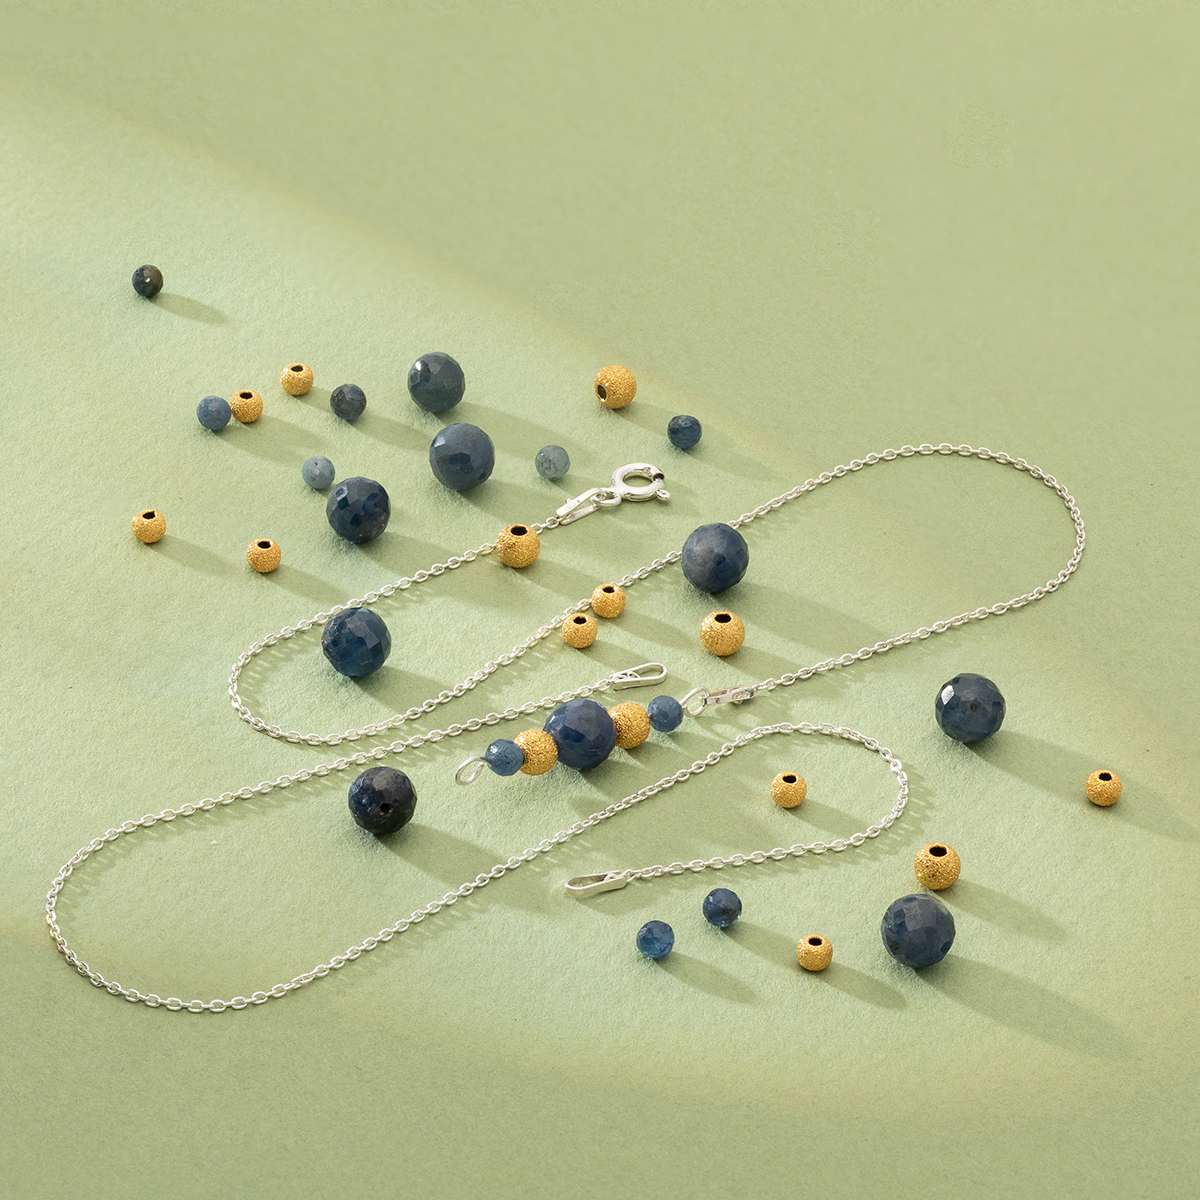 wholesale jewelry supplies